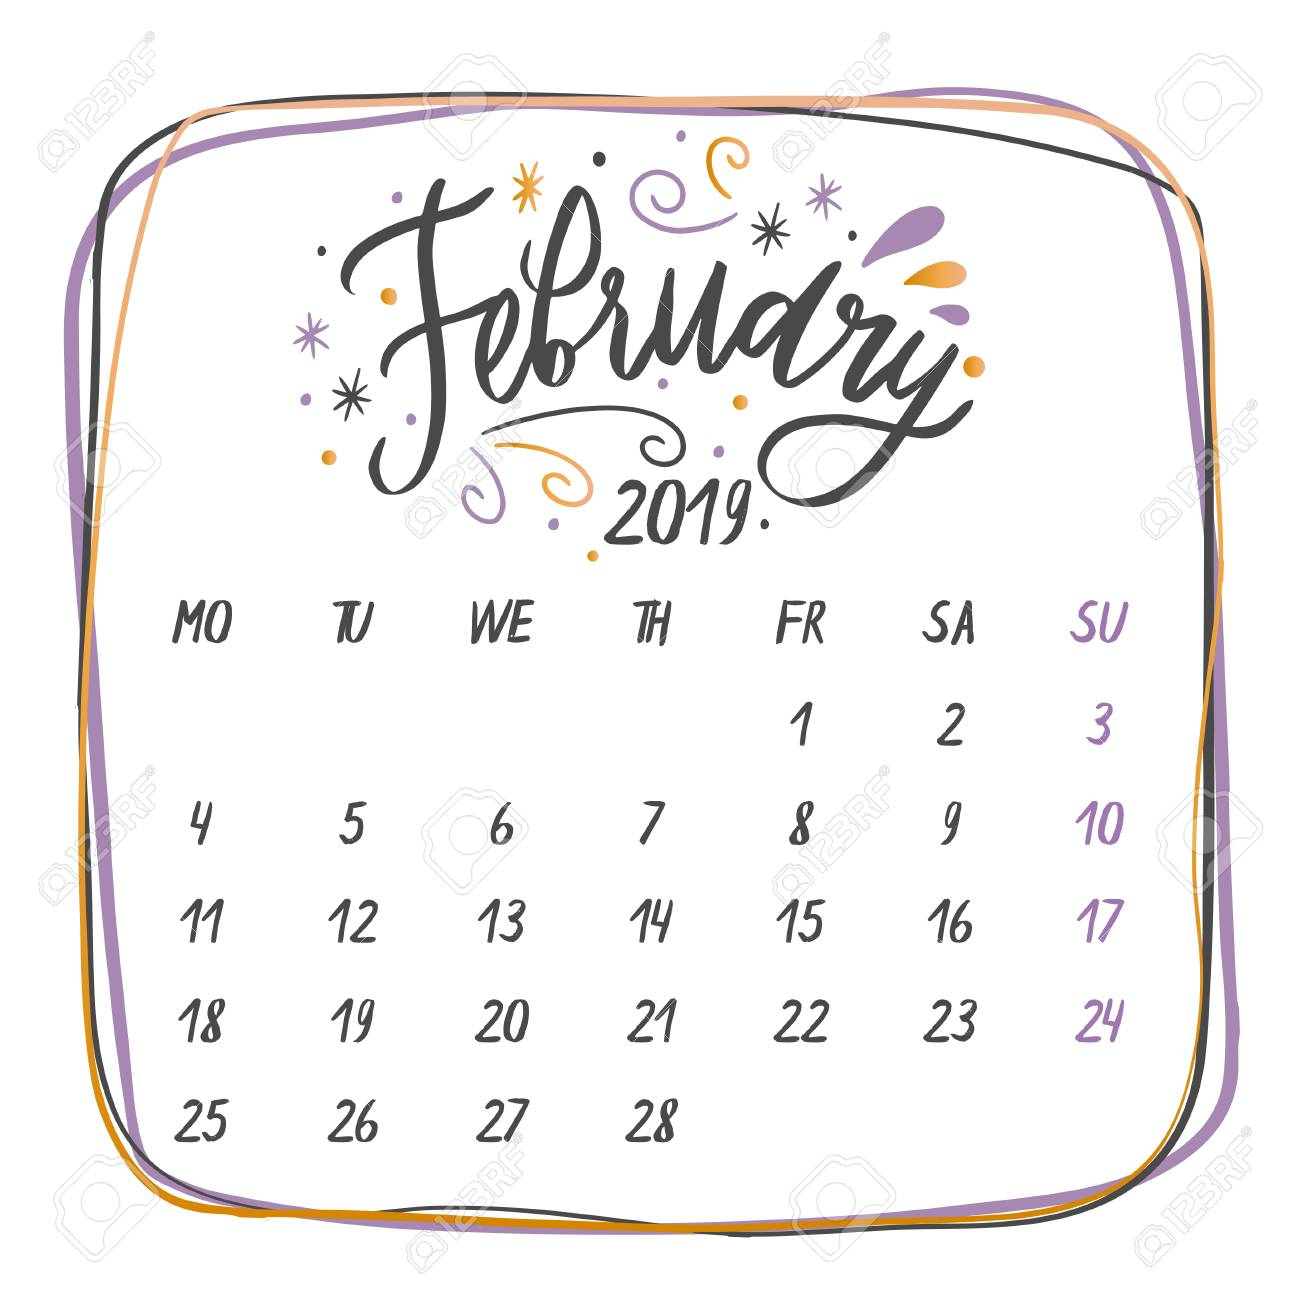 February 2019 Calligraphy Calendar Handwritten Names Of Months: February Calligraphy Words For